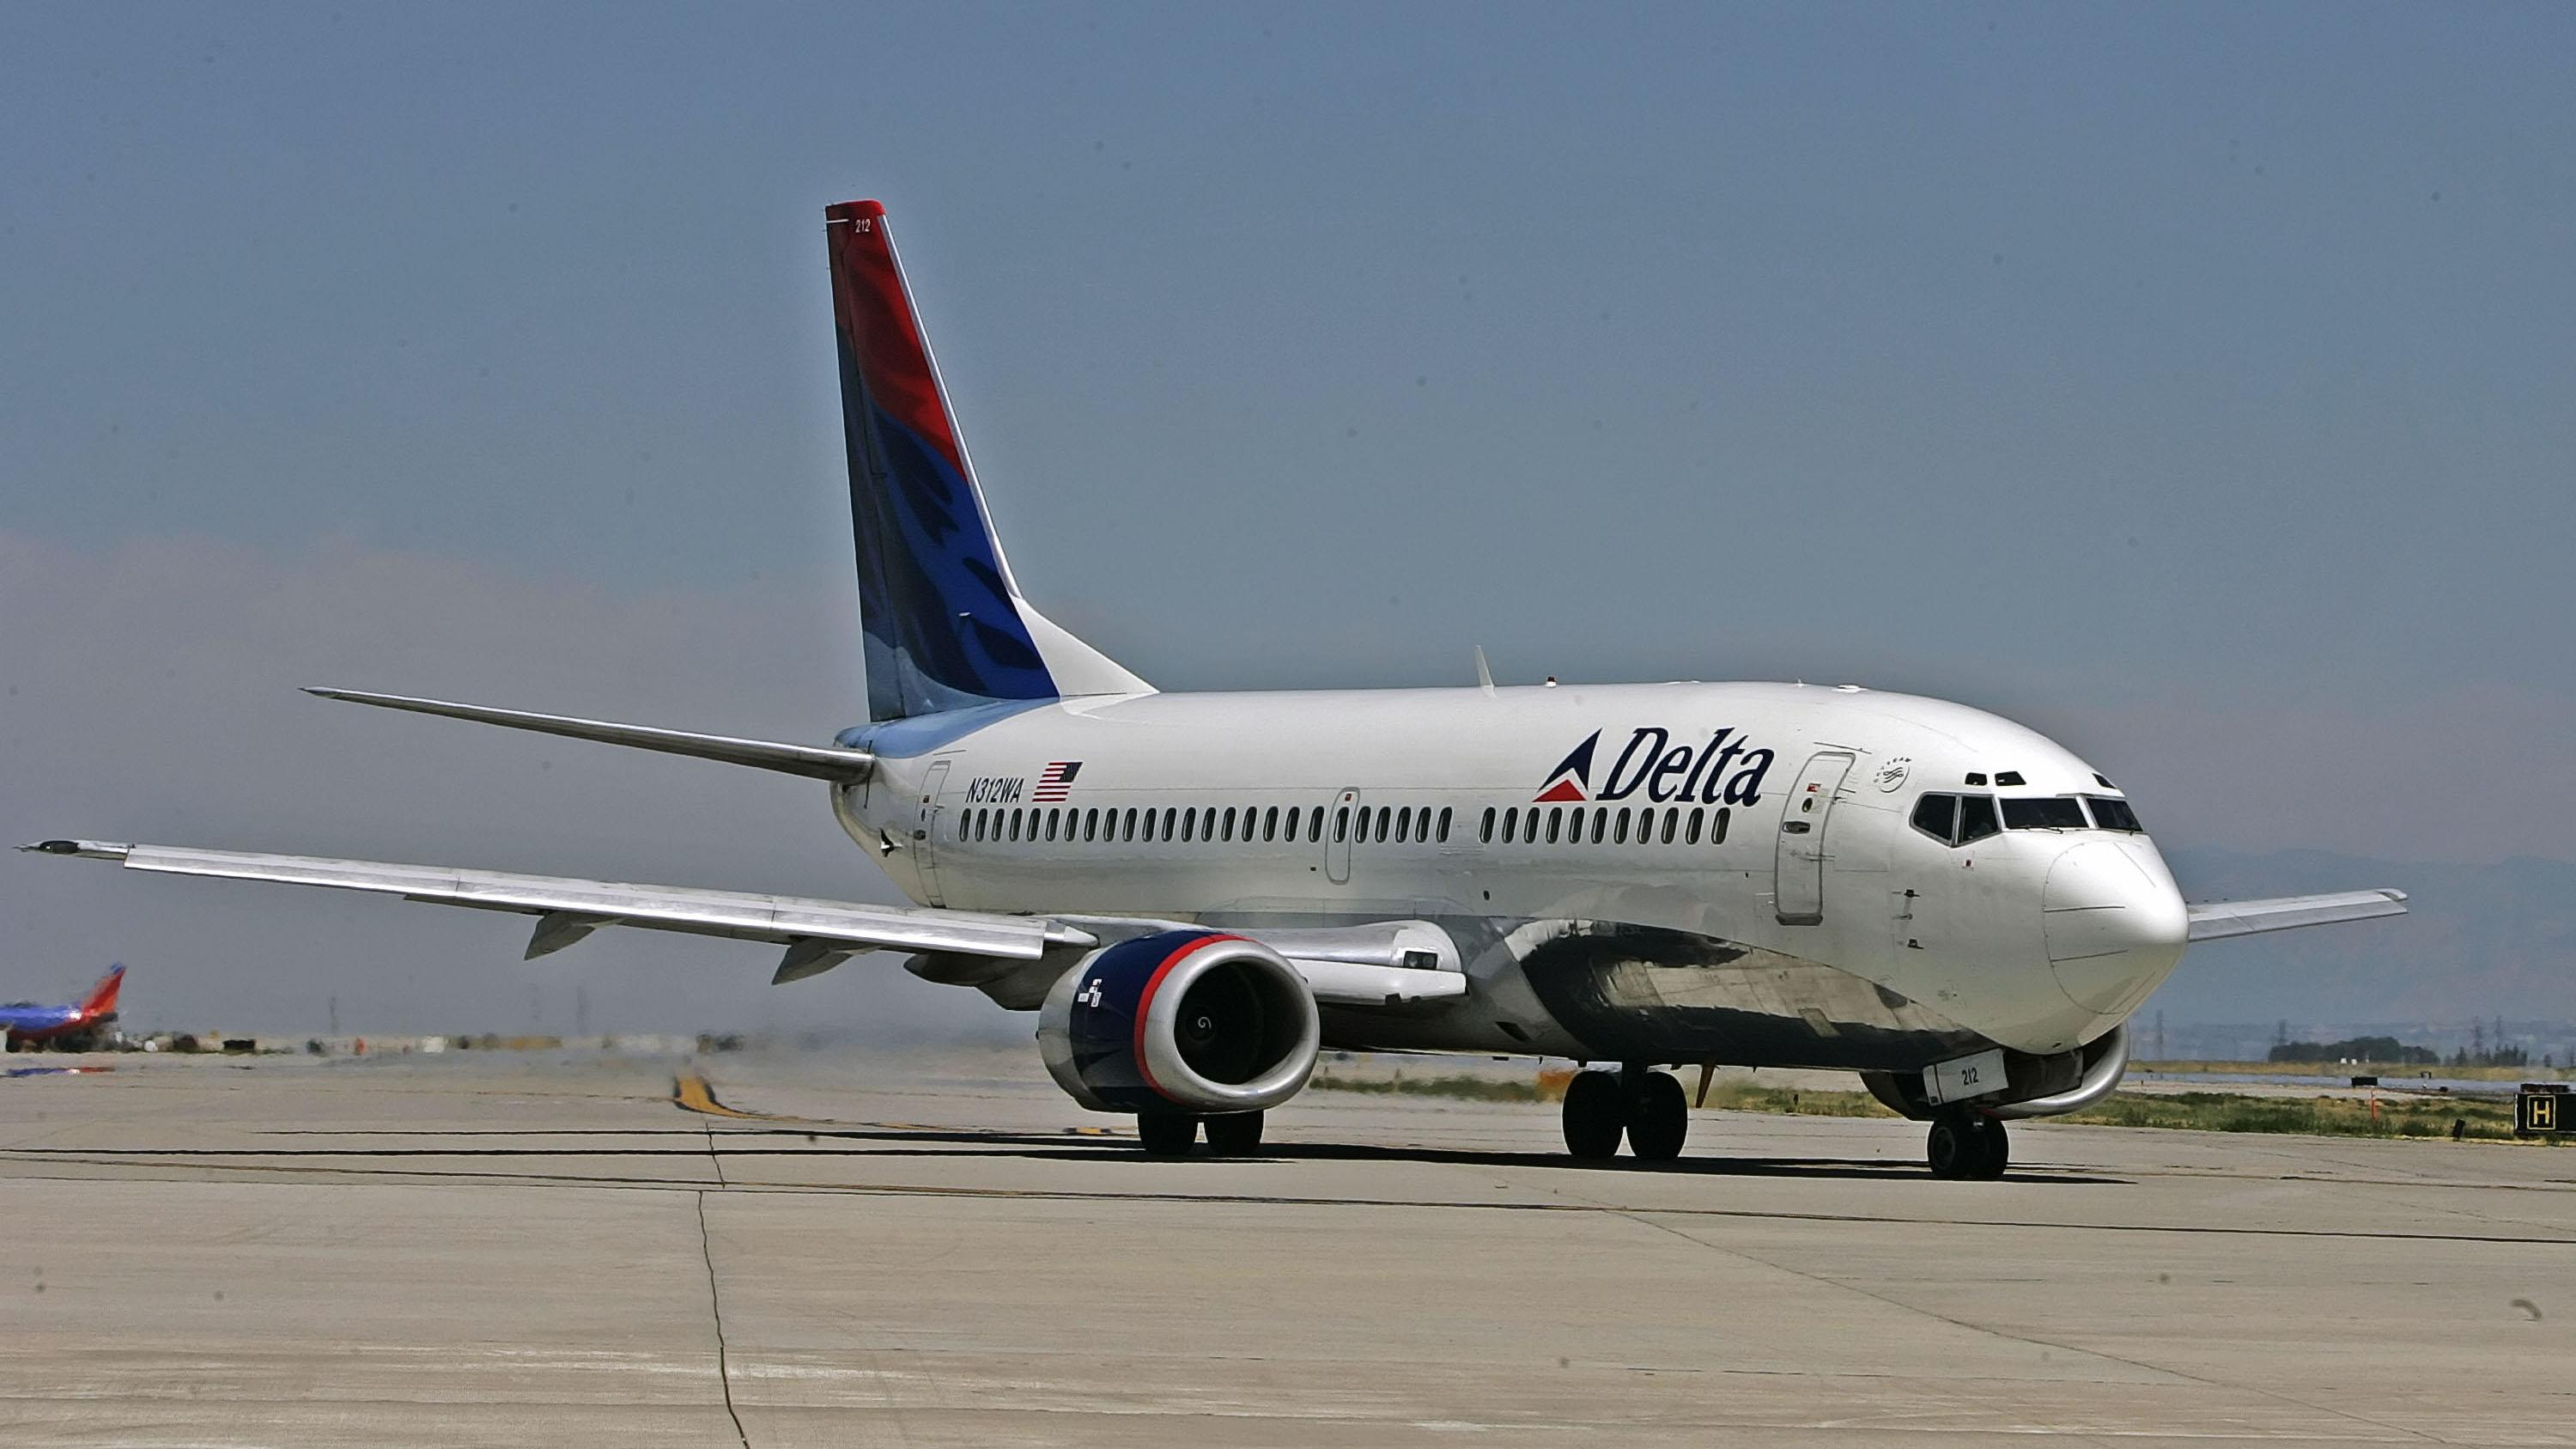 Woman fined $500 for saving free Delta Air Lines snack